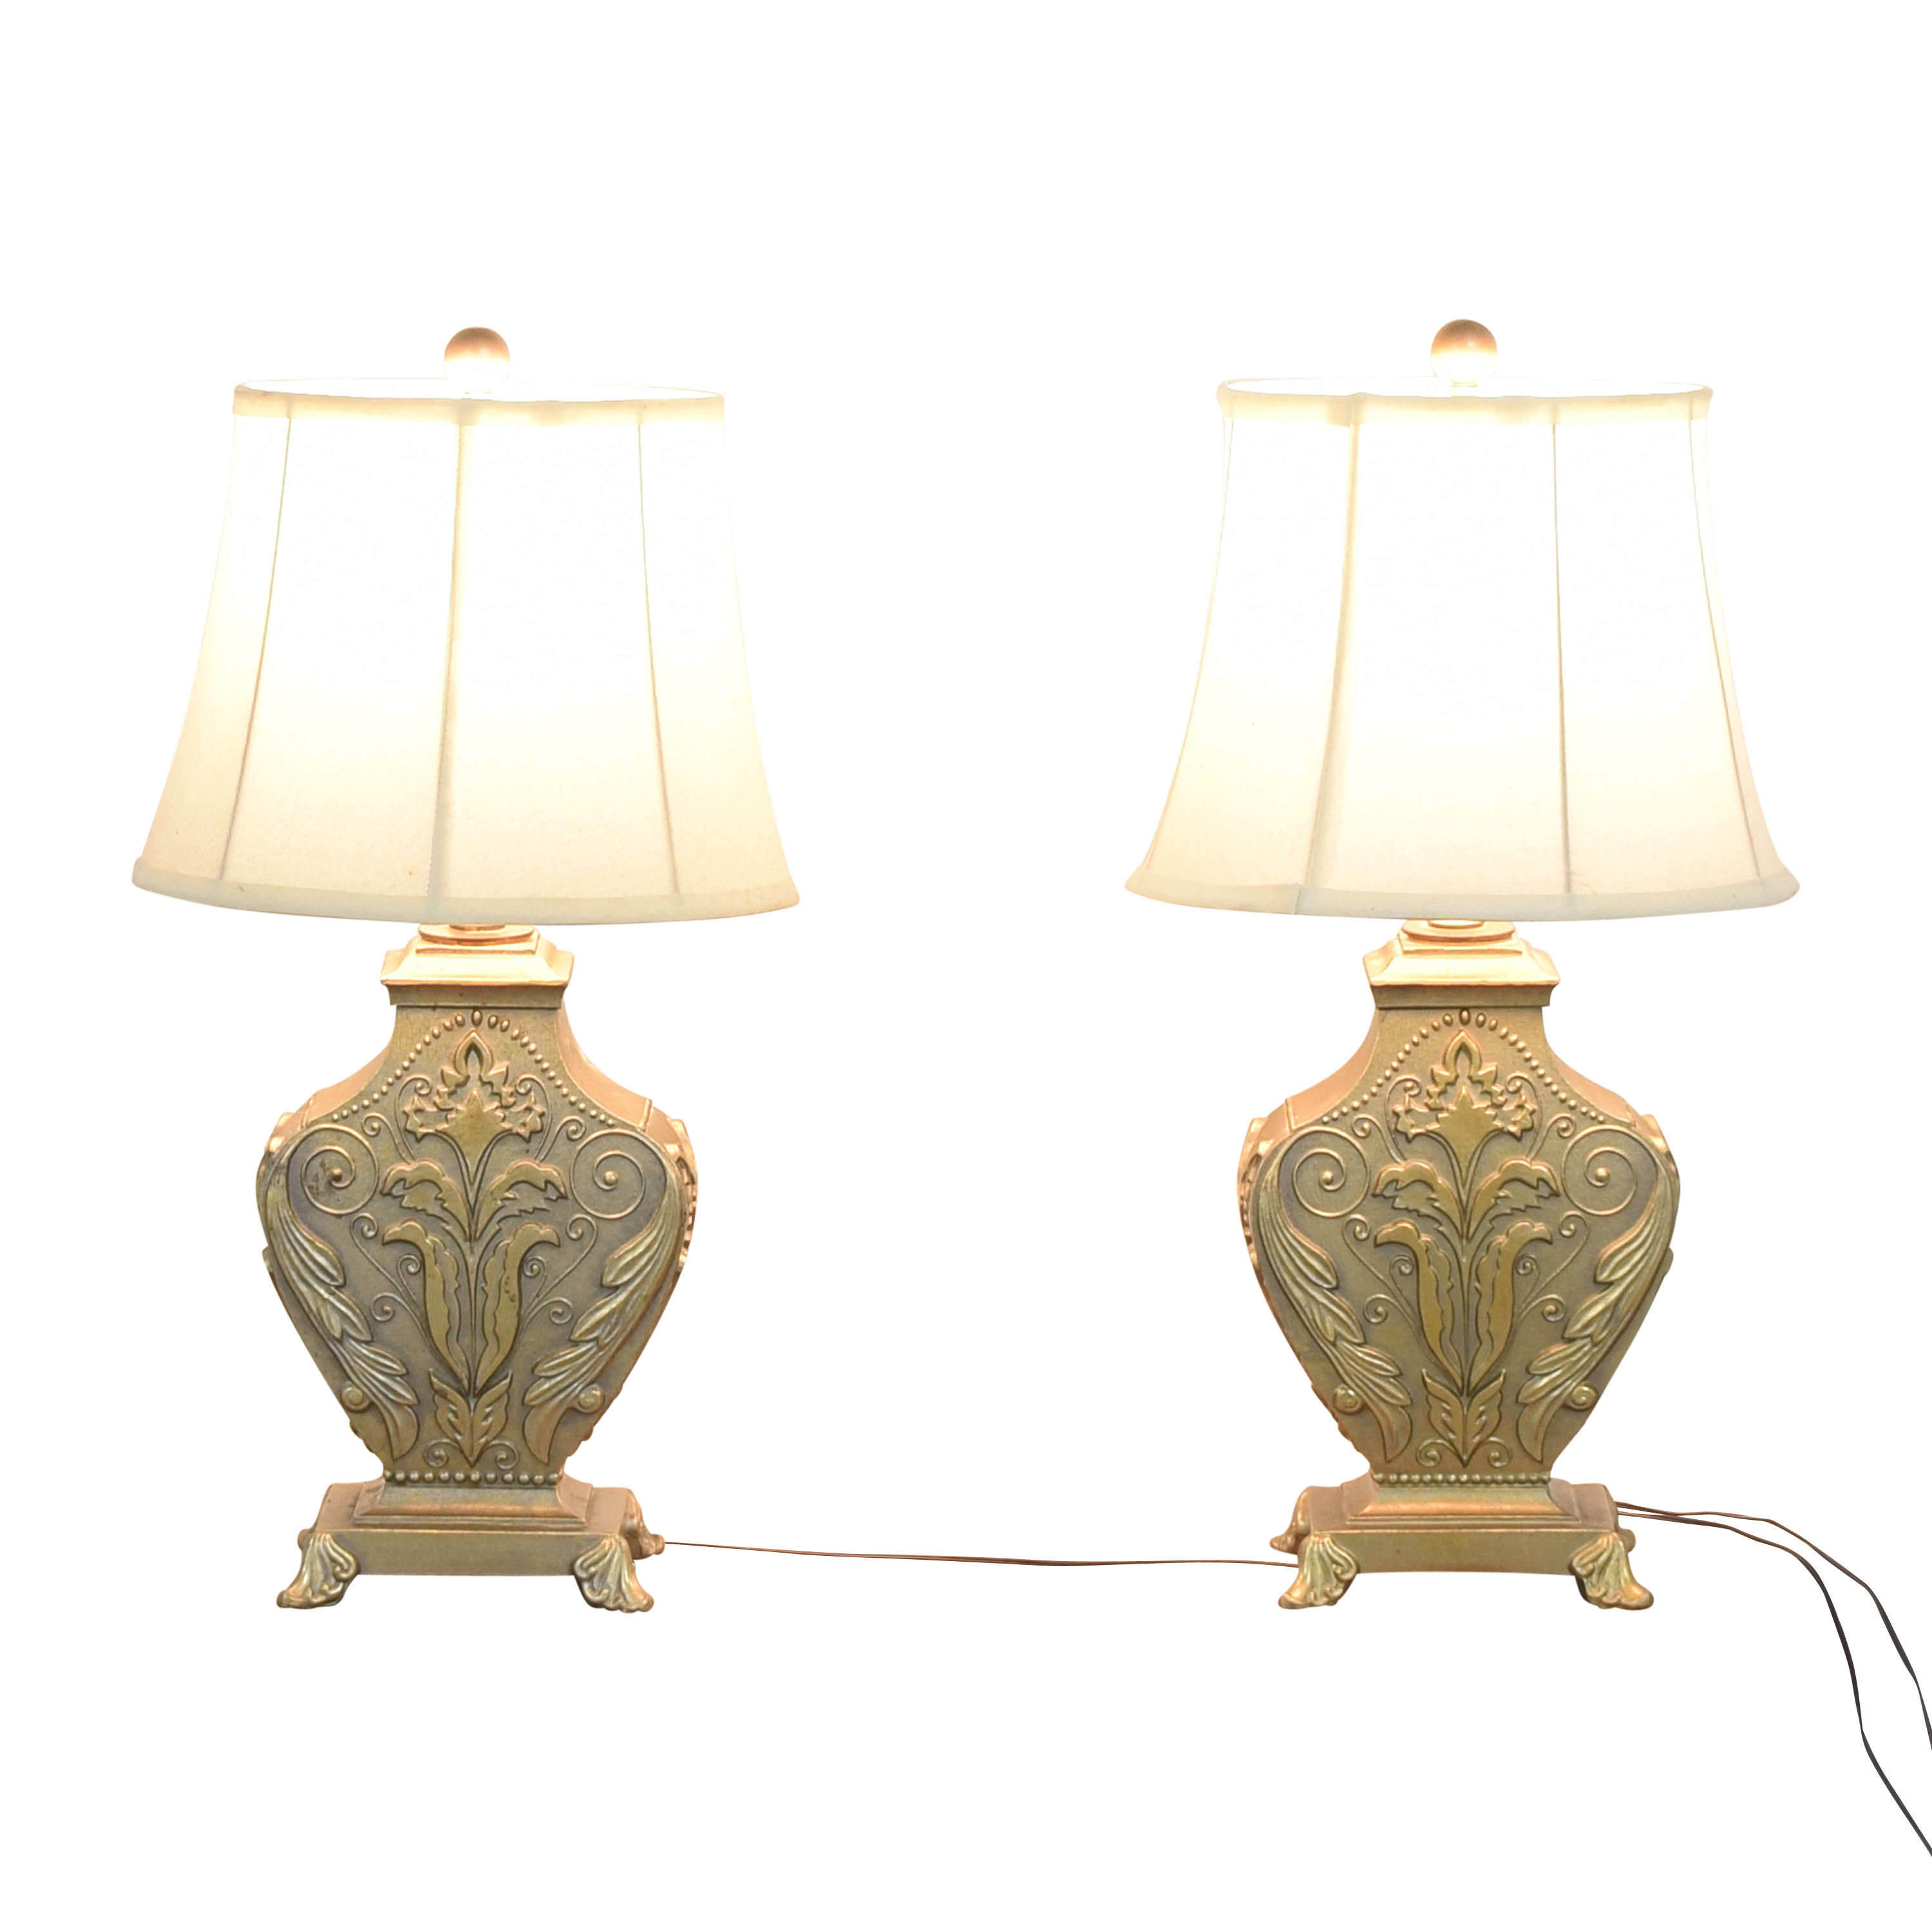 Restoration Hardware Restoration Hardware Table Lamps second hand